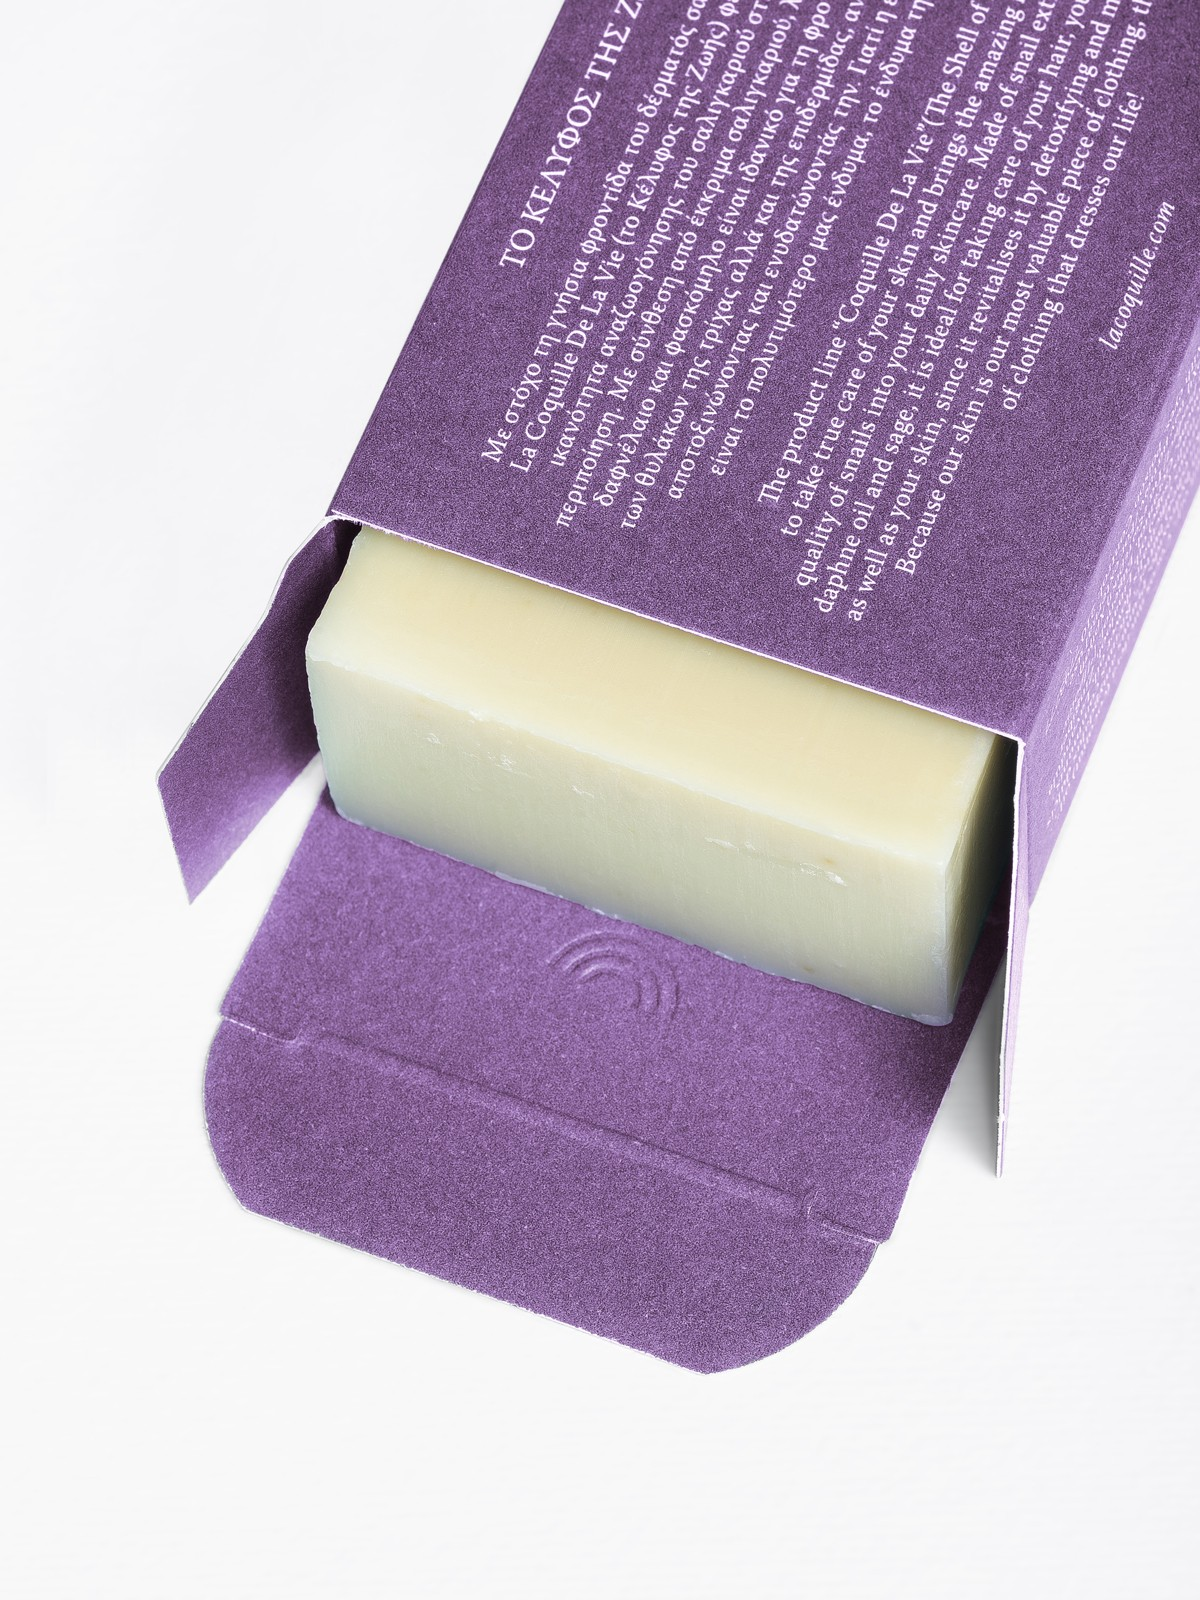 Snail secretion, Olive oil & Wild Lavender Soap bar